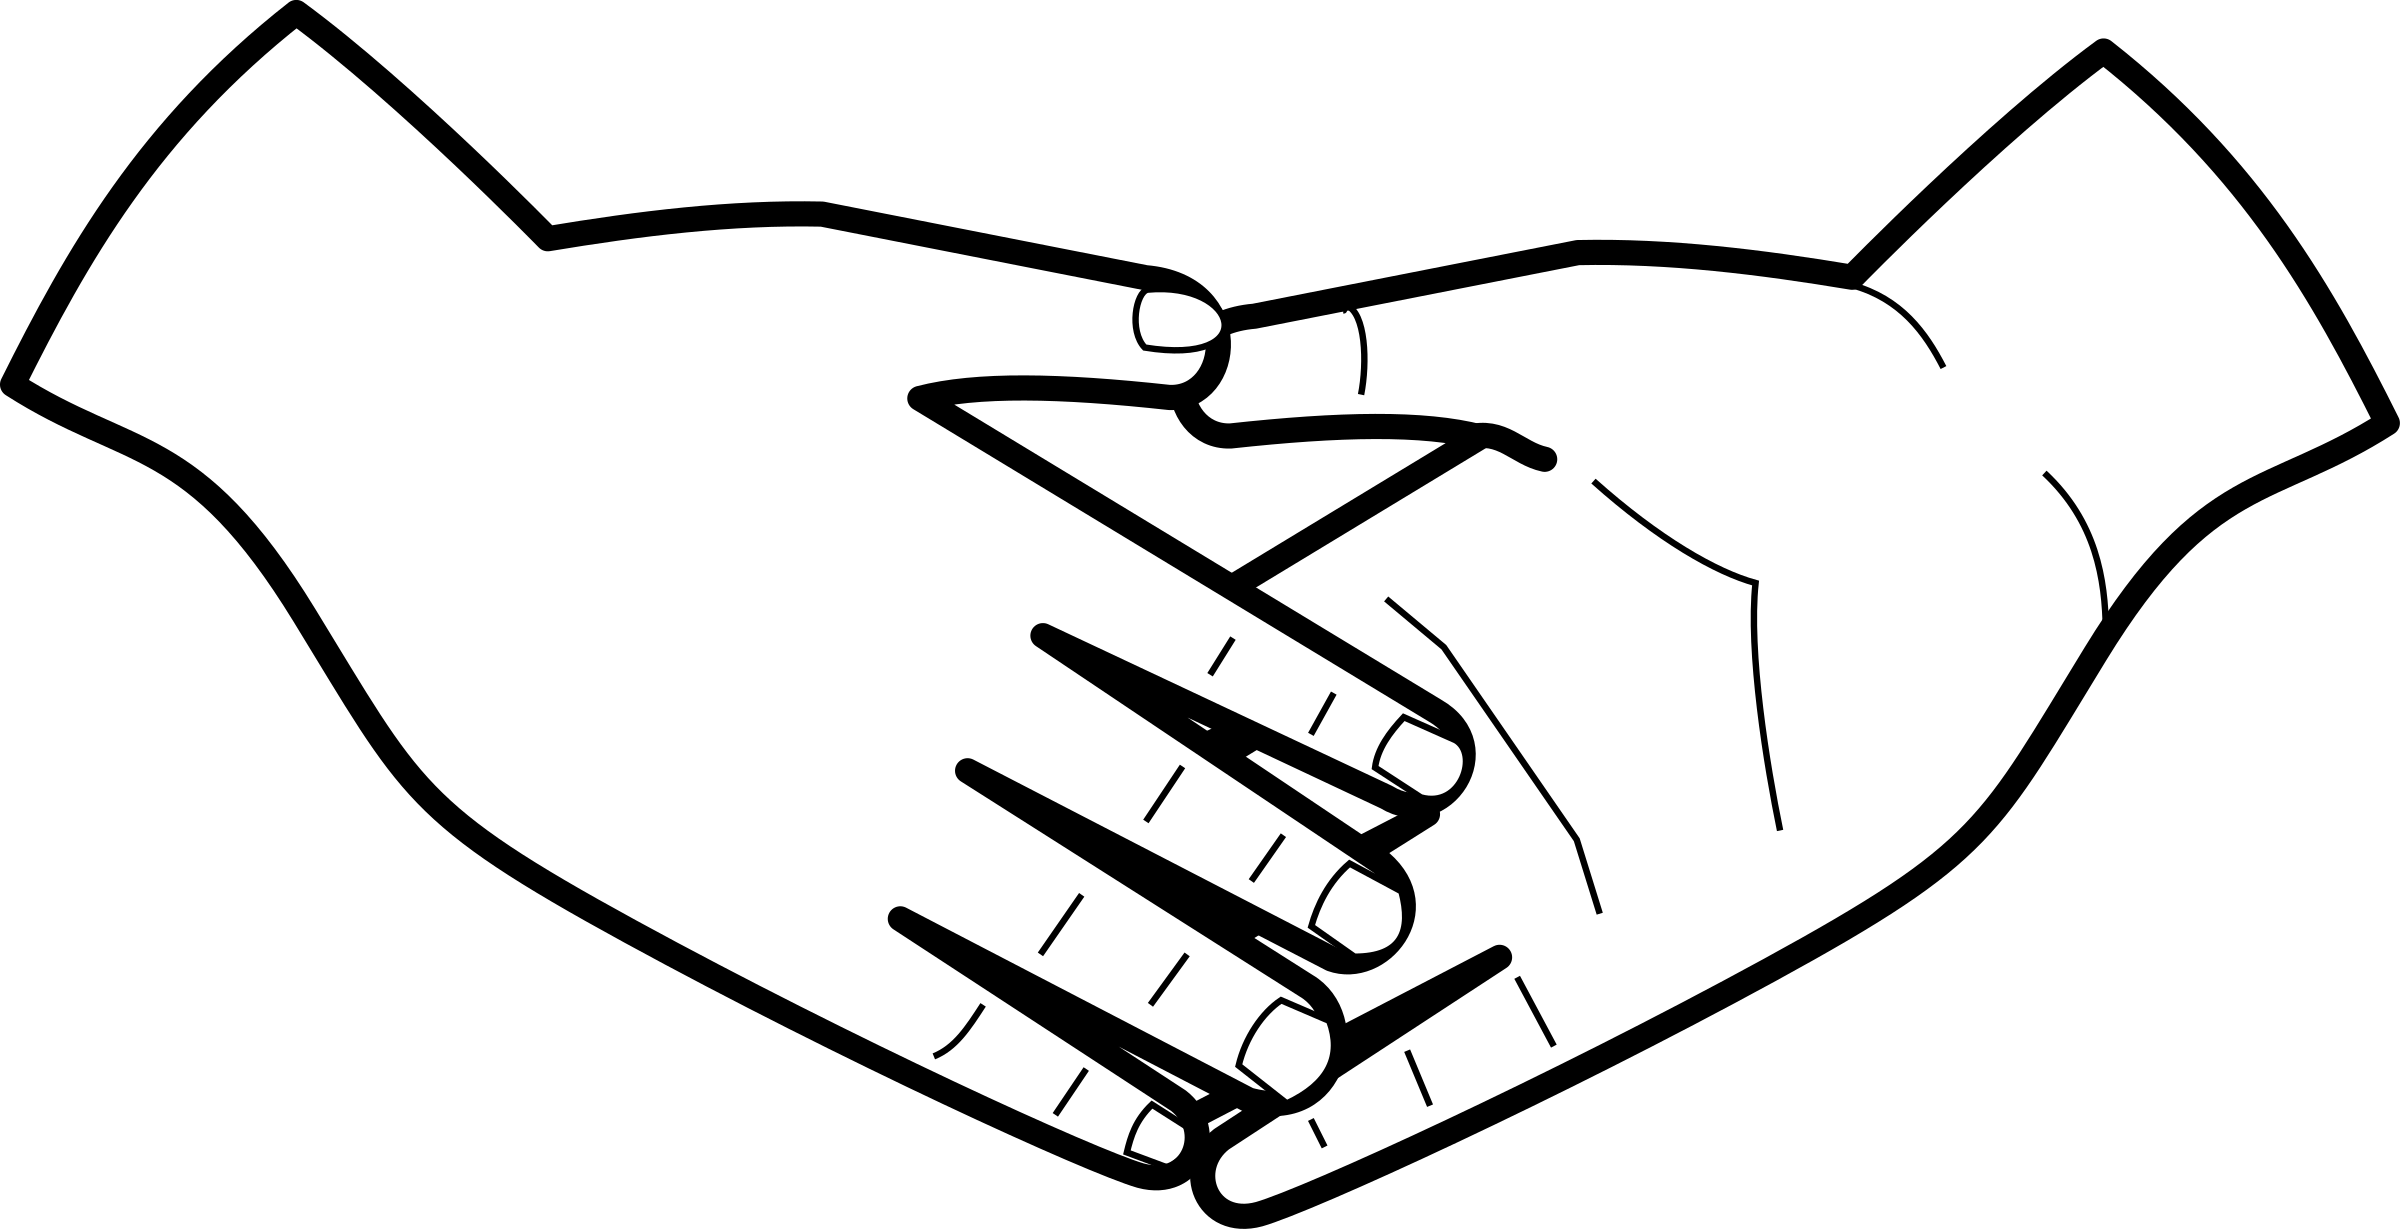 Shaking hands icons png. Handshake clipart table